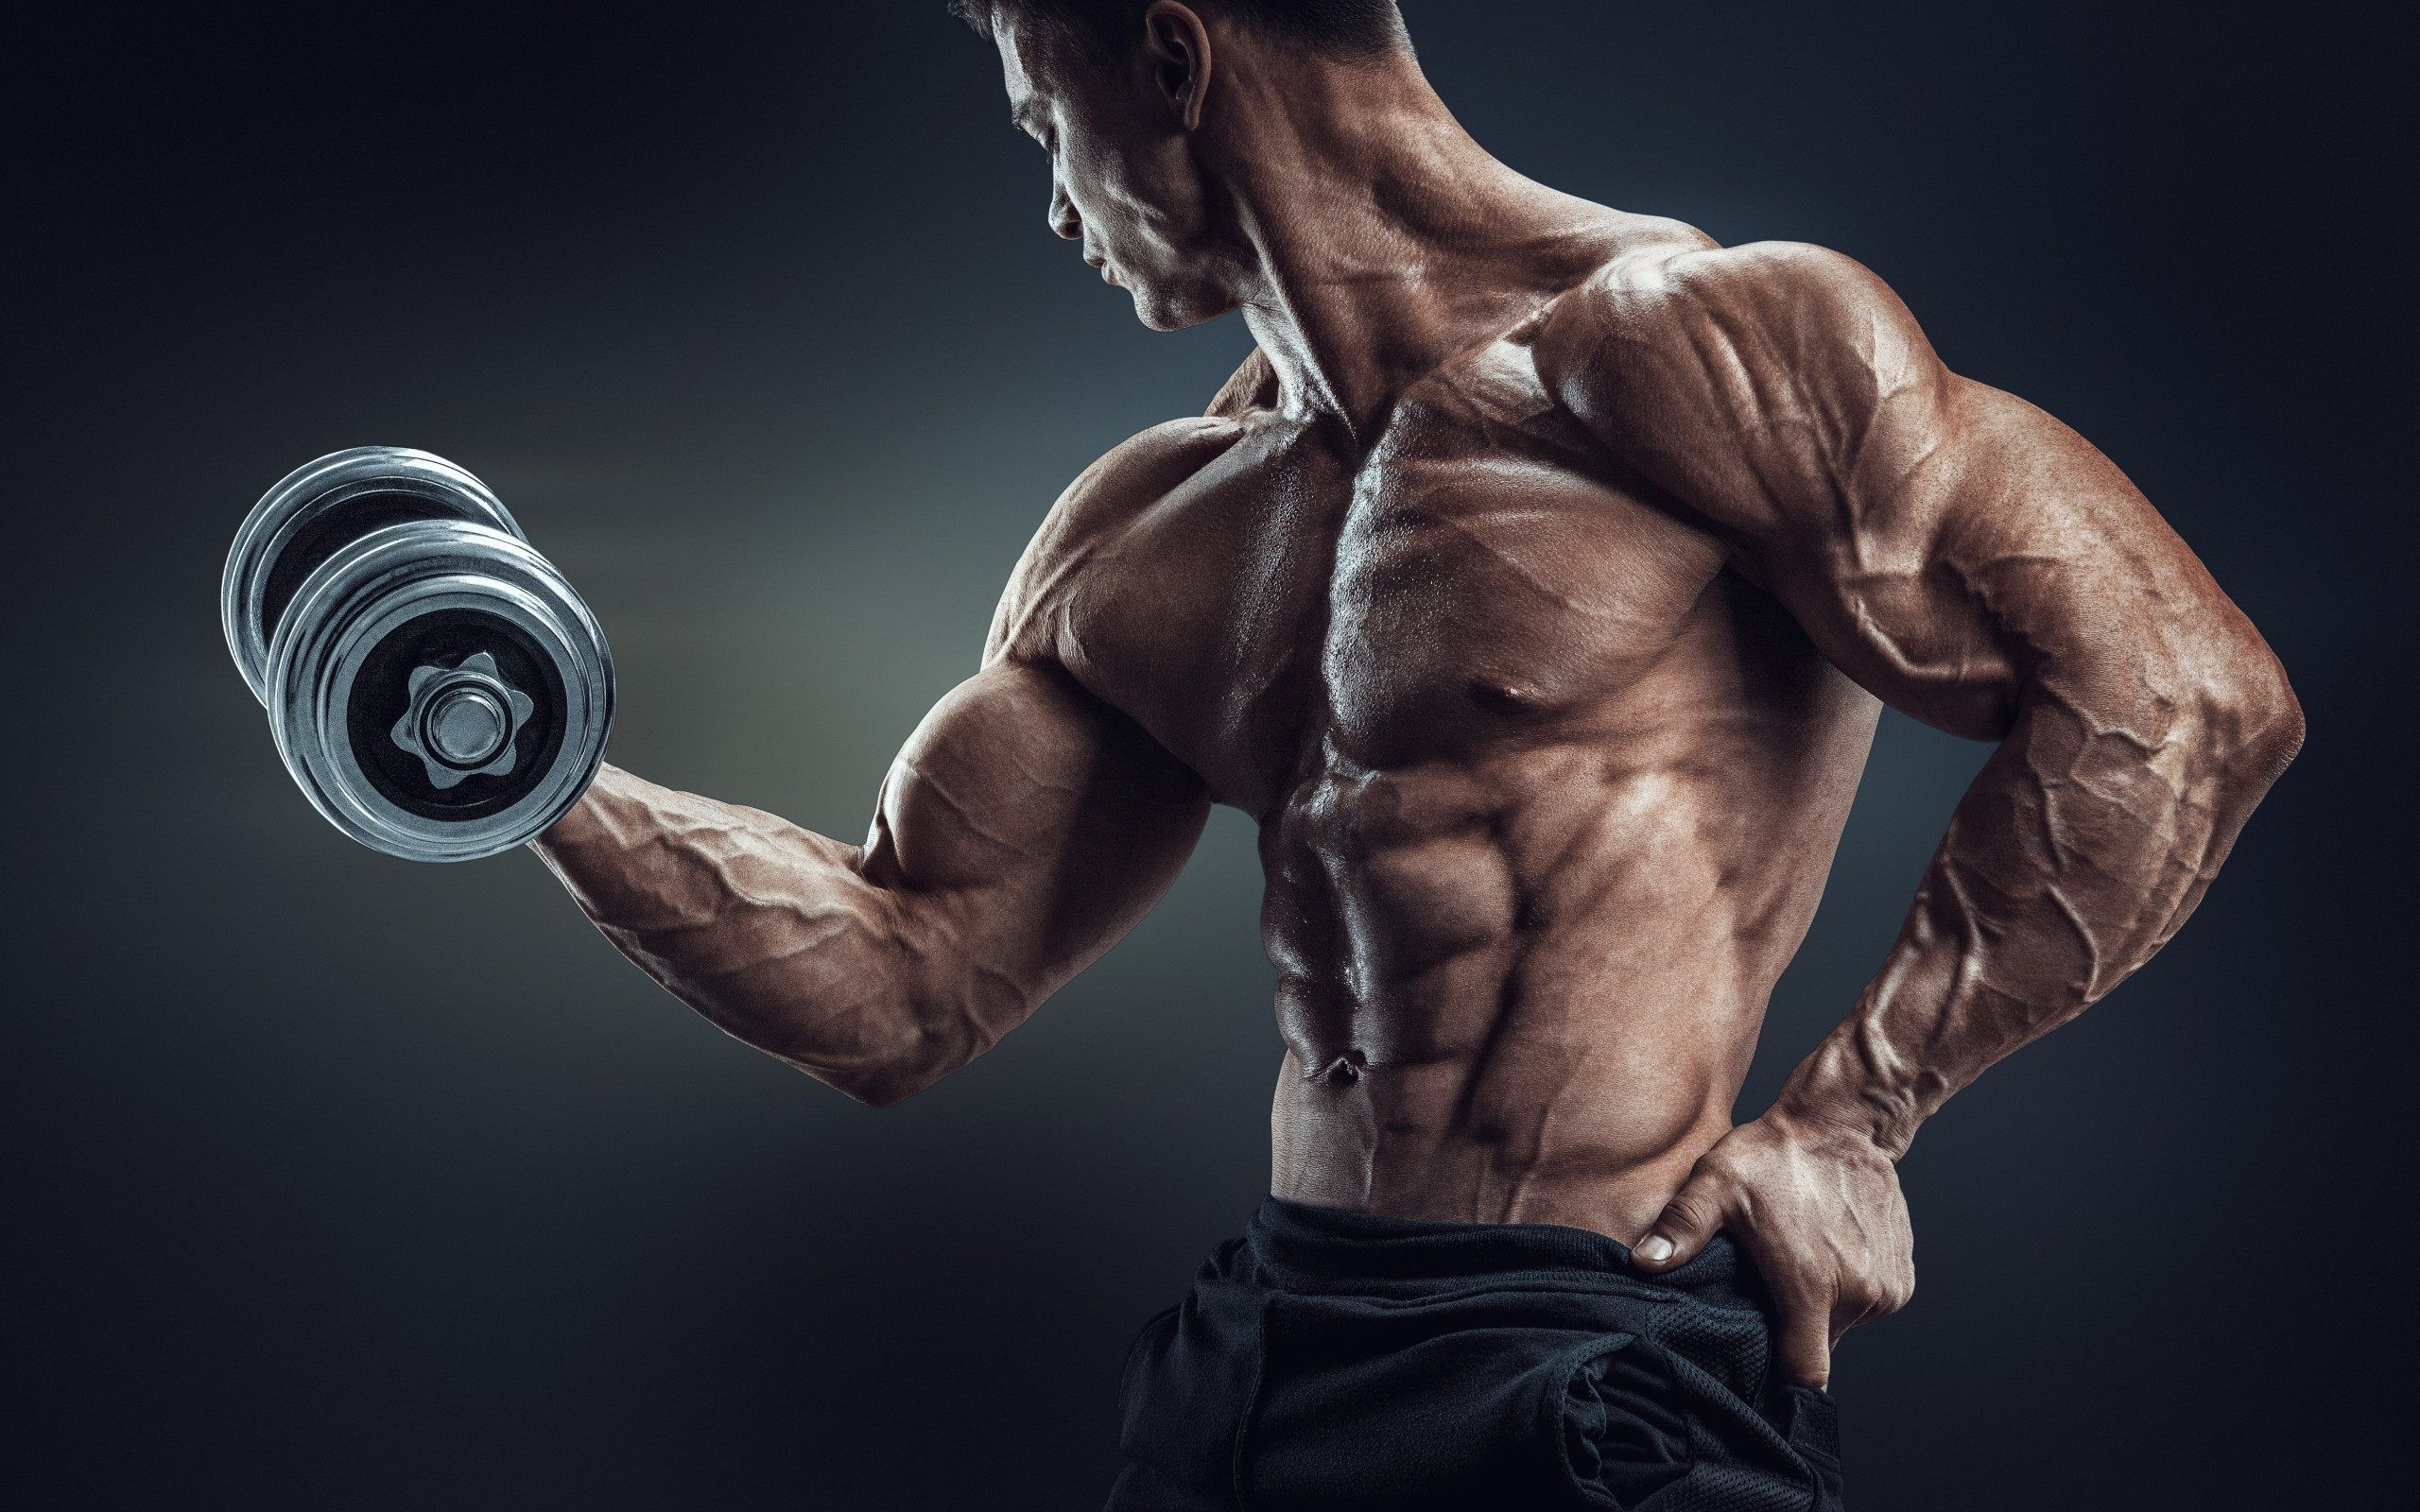 Bodybuilding Wallpapers 4